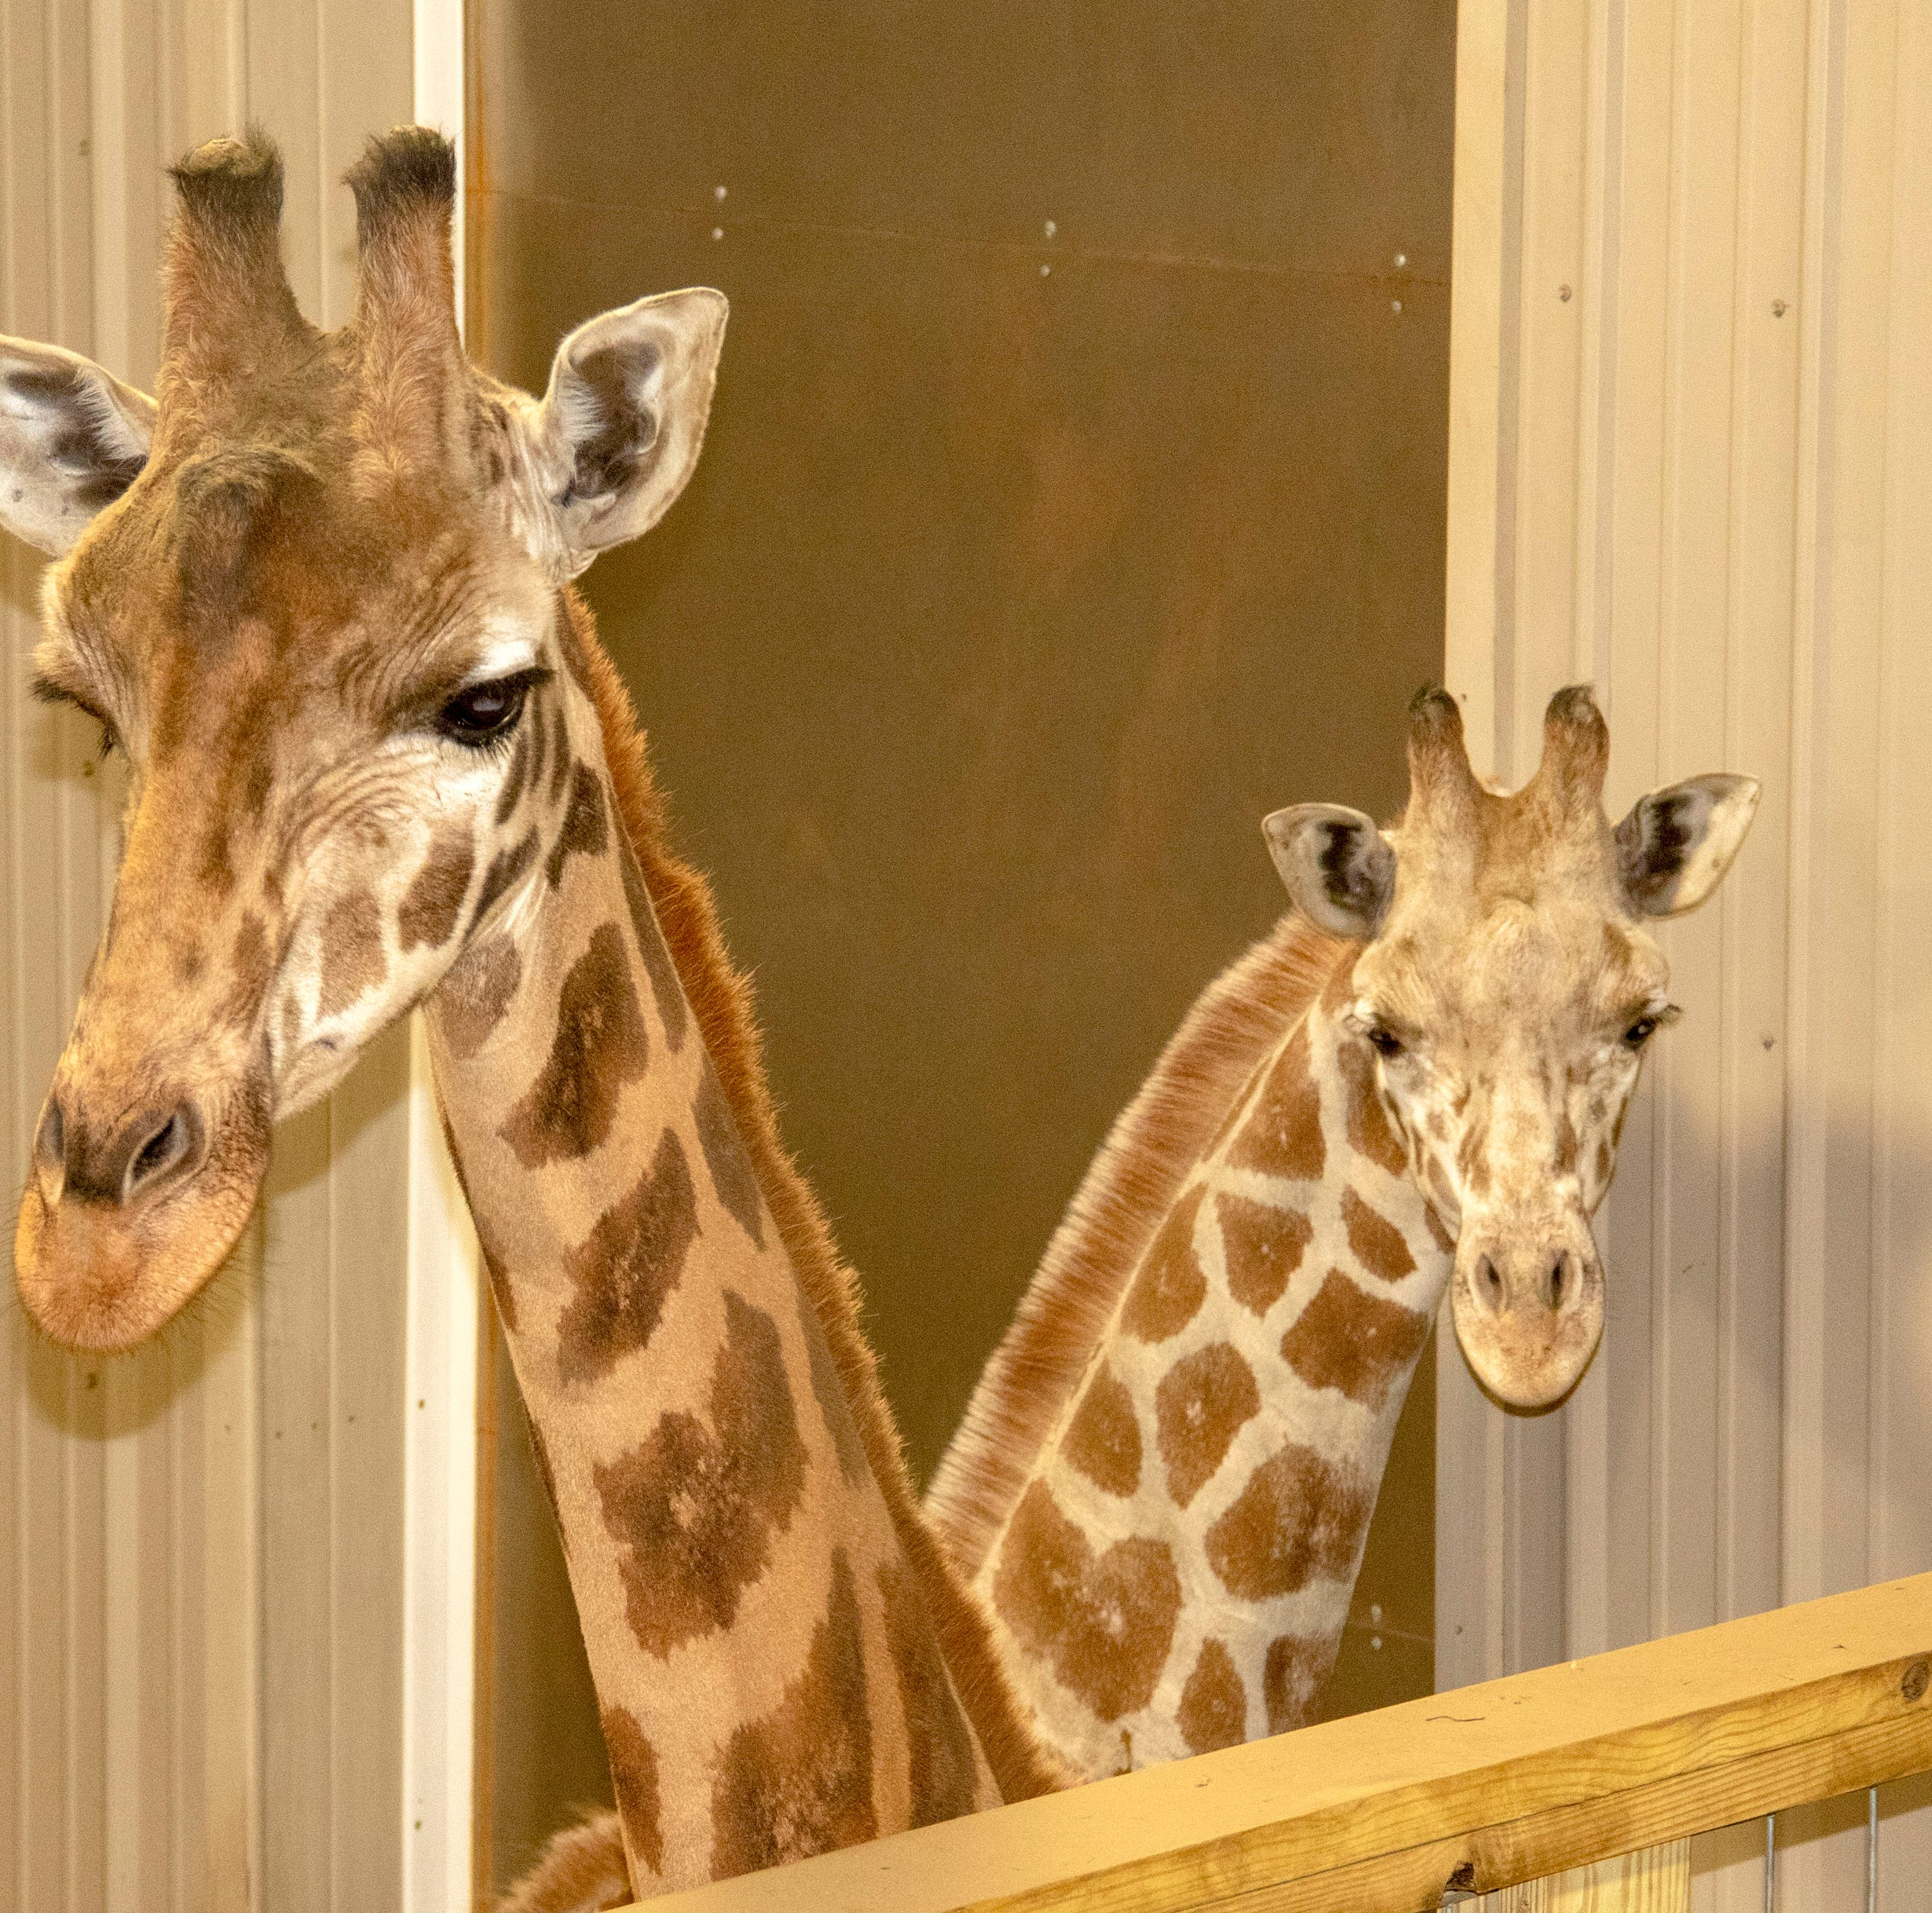 Animal Adventure giraffe's new companion: Tajiri live feed reveals park's fourth giraffe